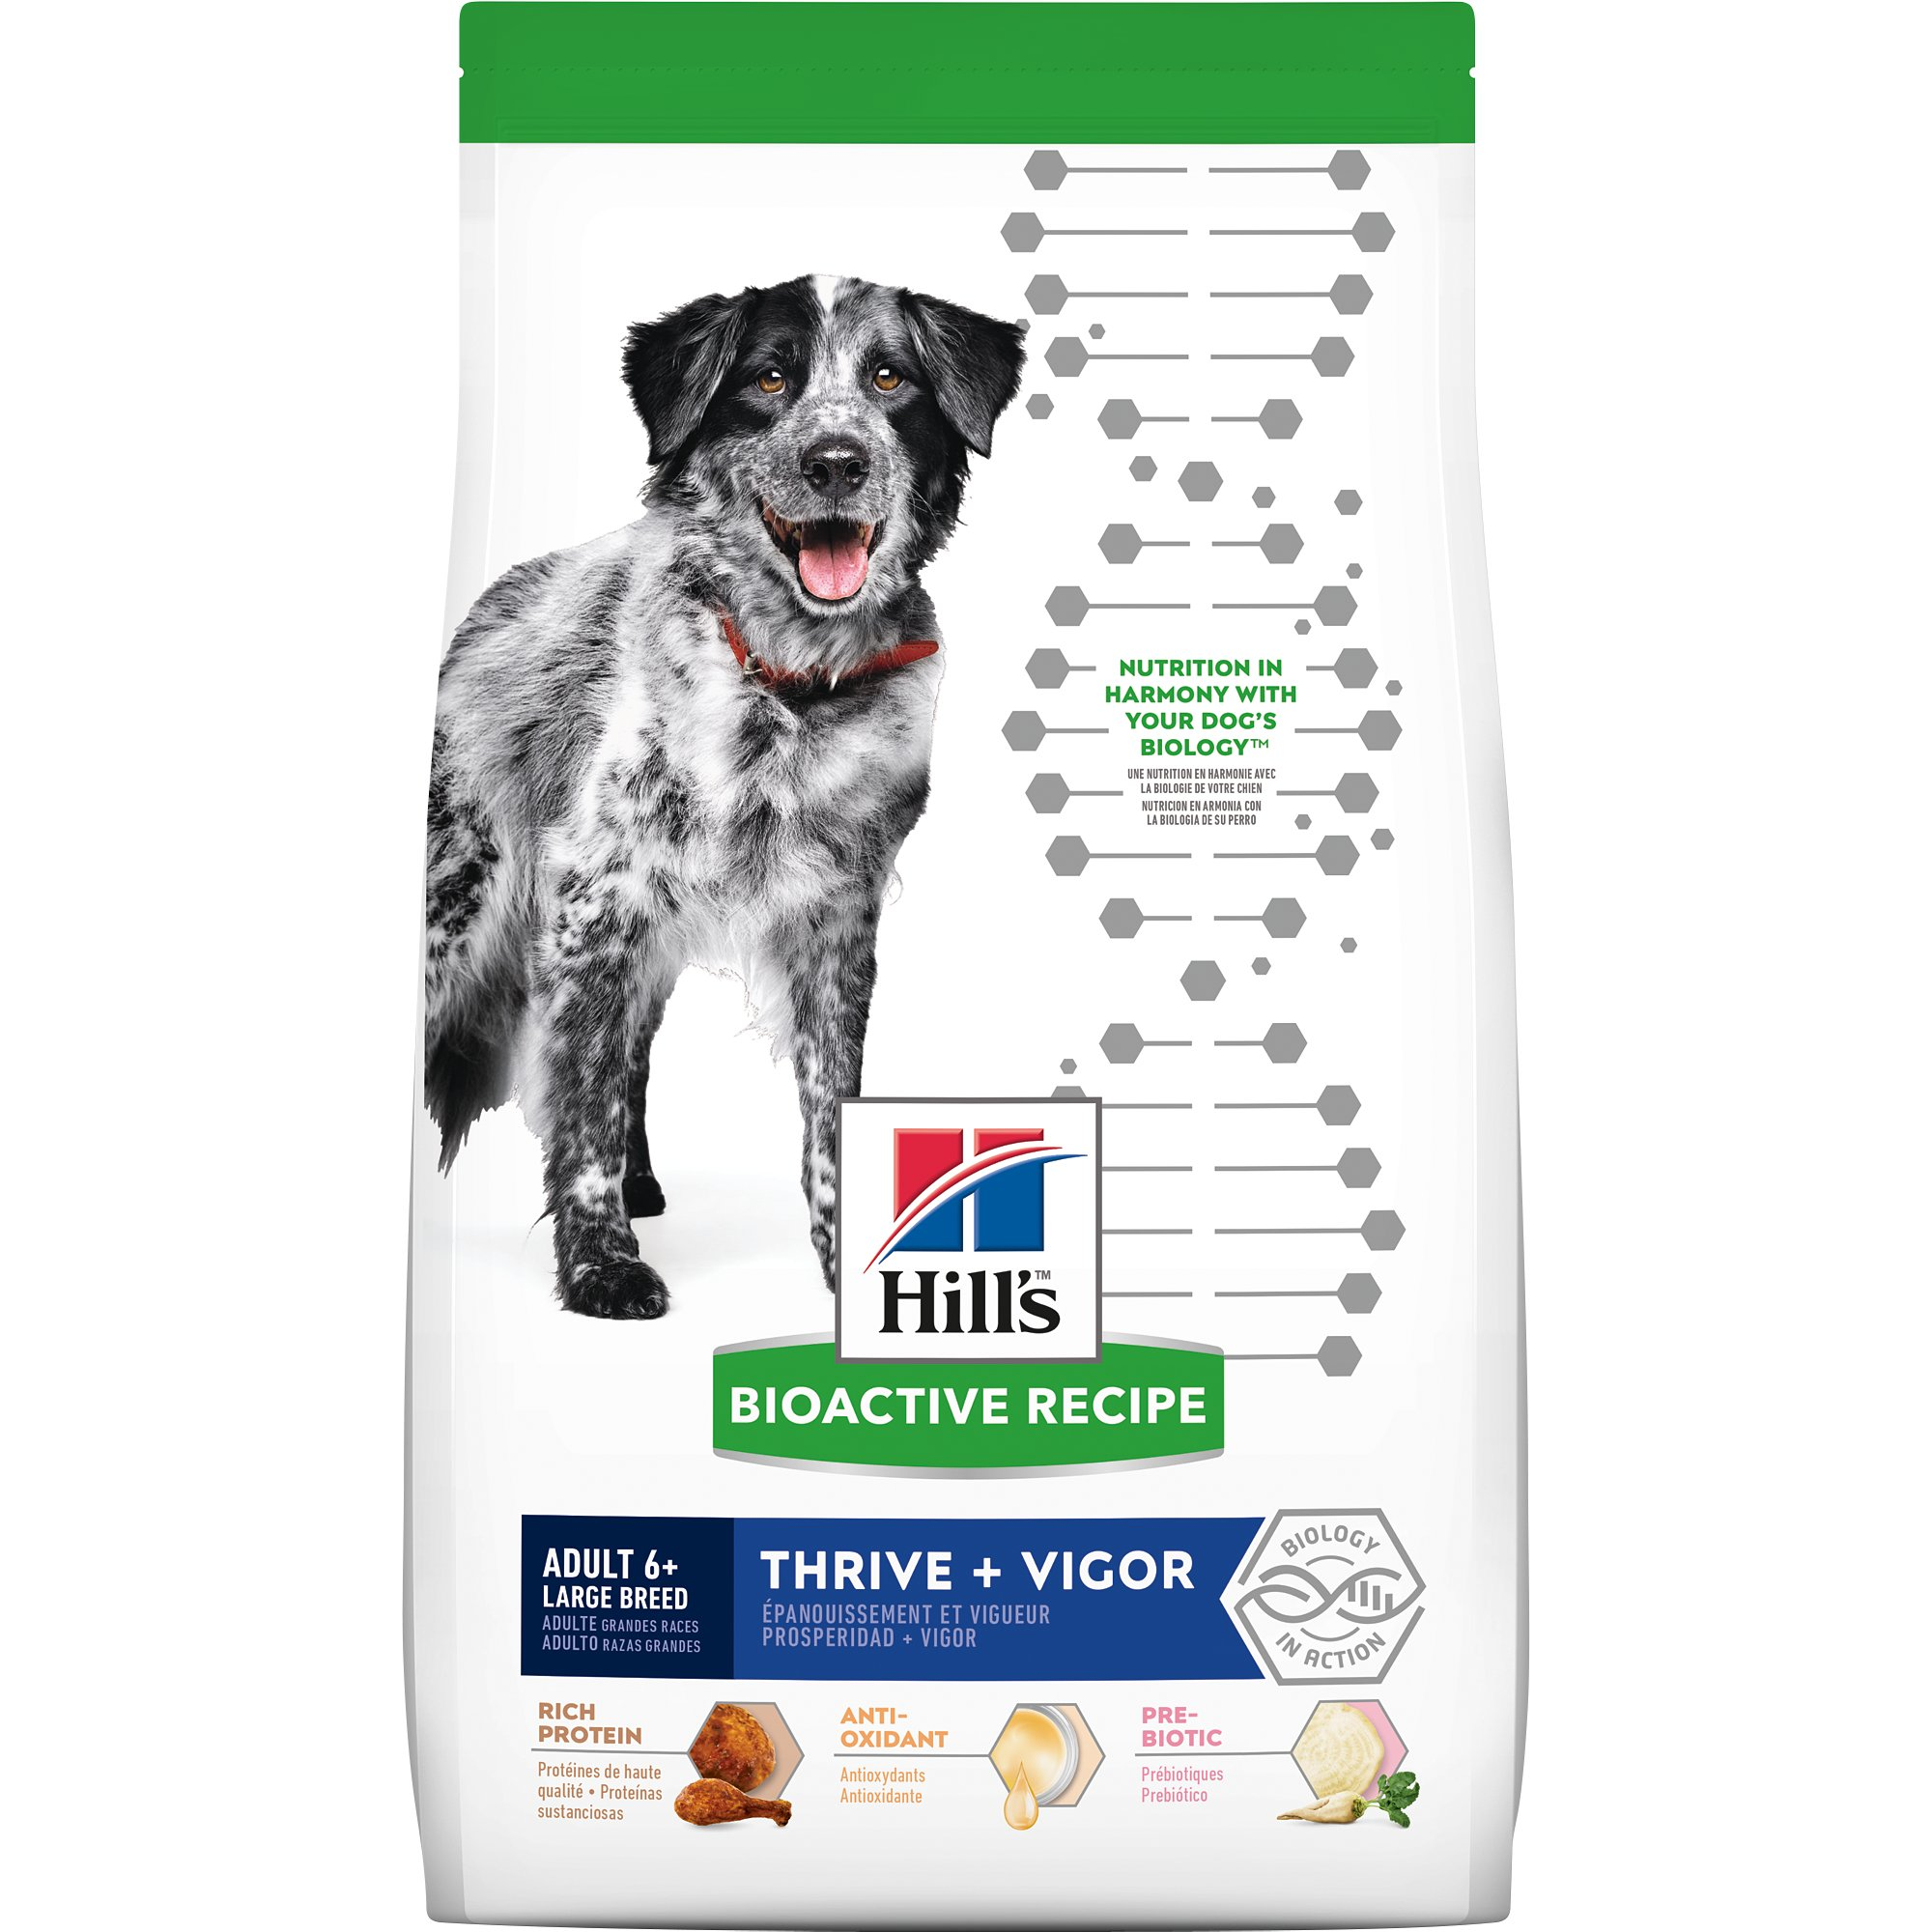 Hill's Bioactive Recipe Thrive + Vigor Chicken & Brown Rice Large Breed Adult Dry Dog Food, 22.5 Lbs.